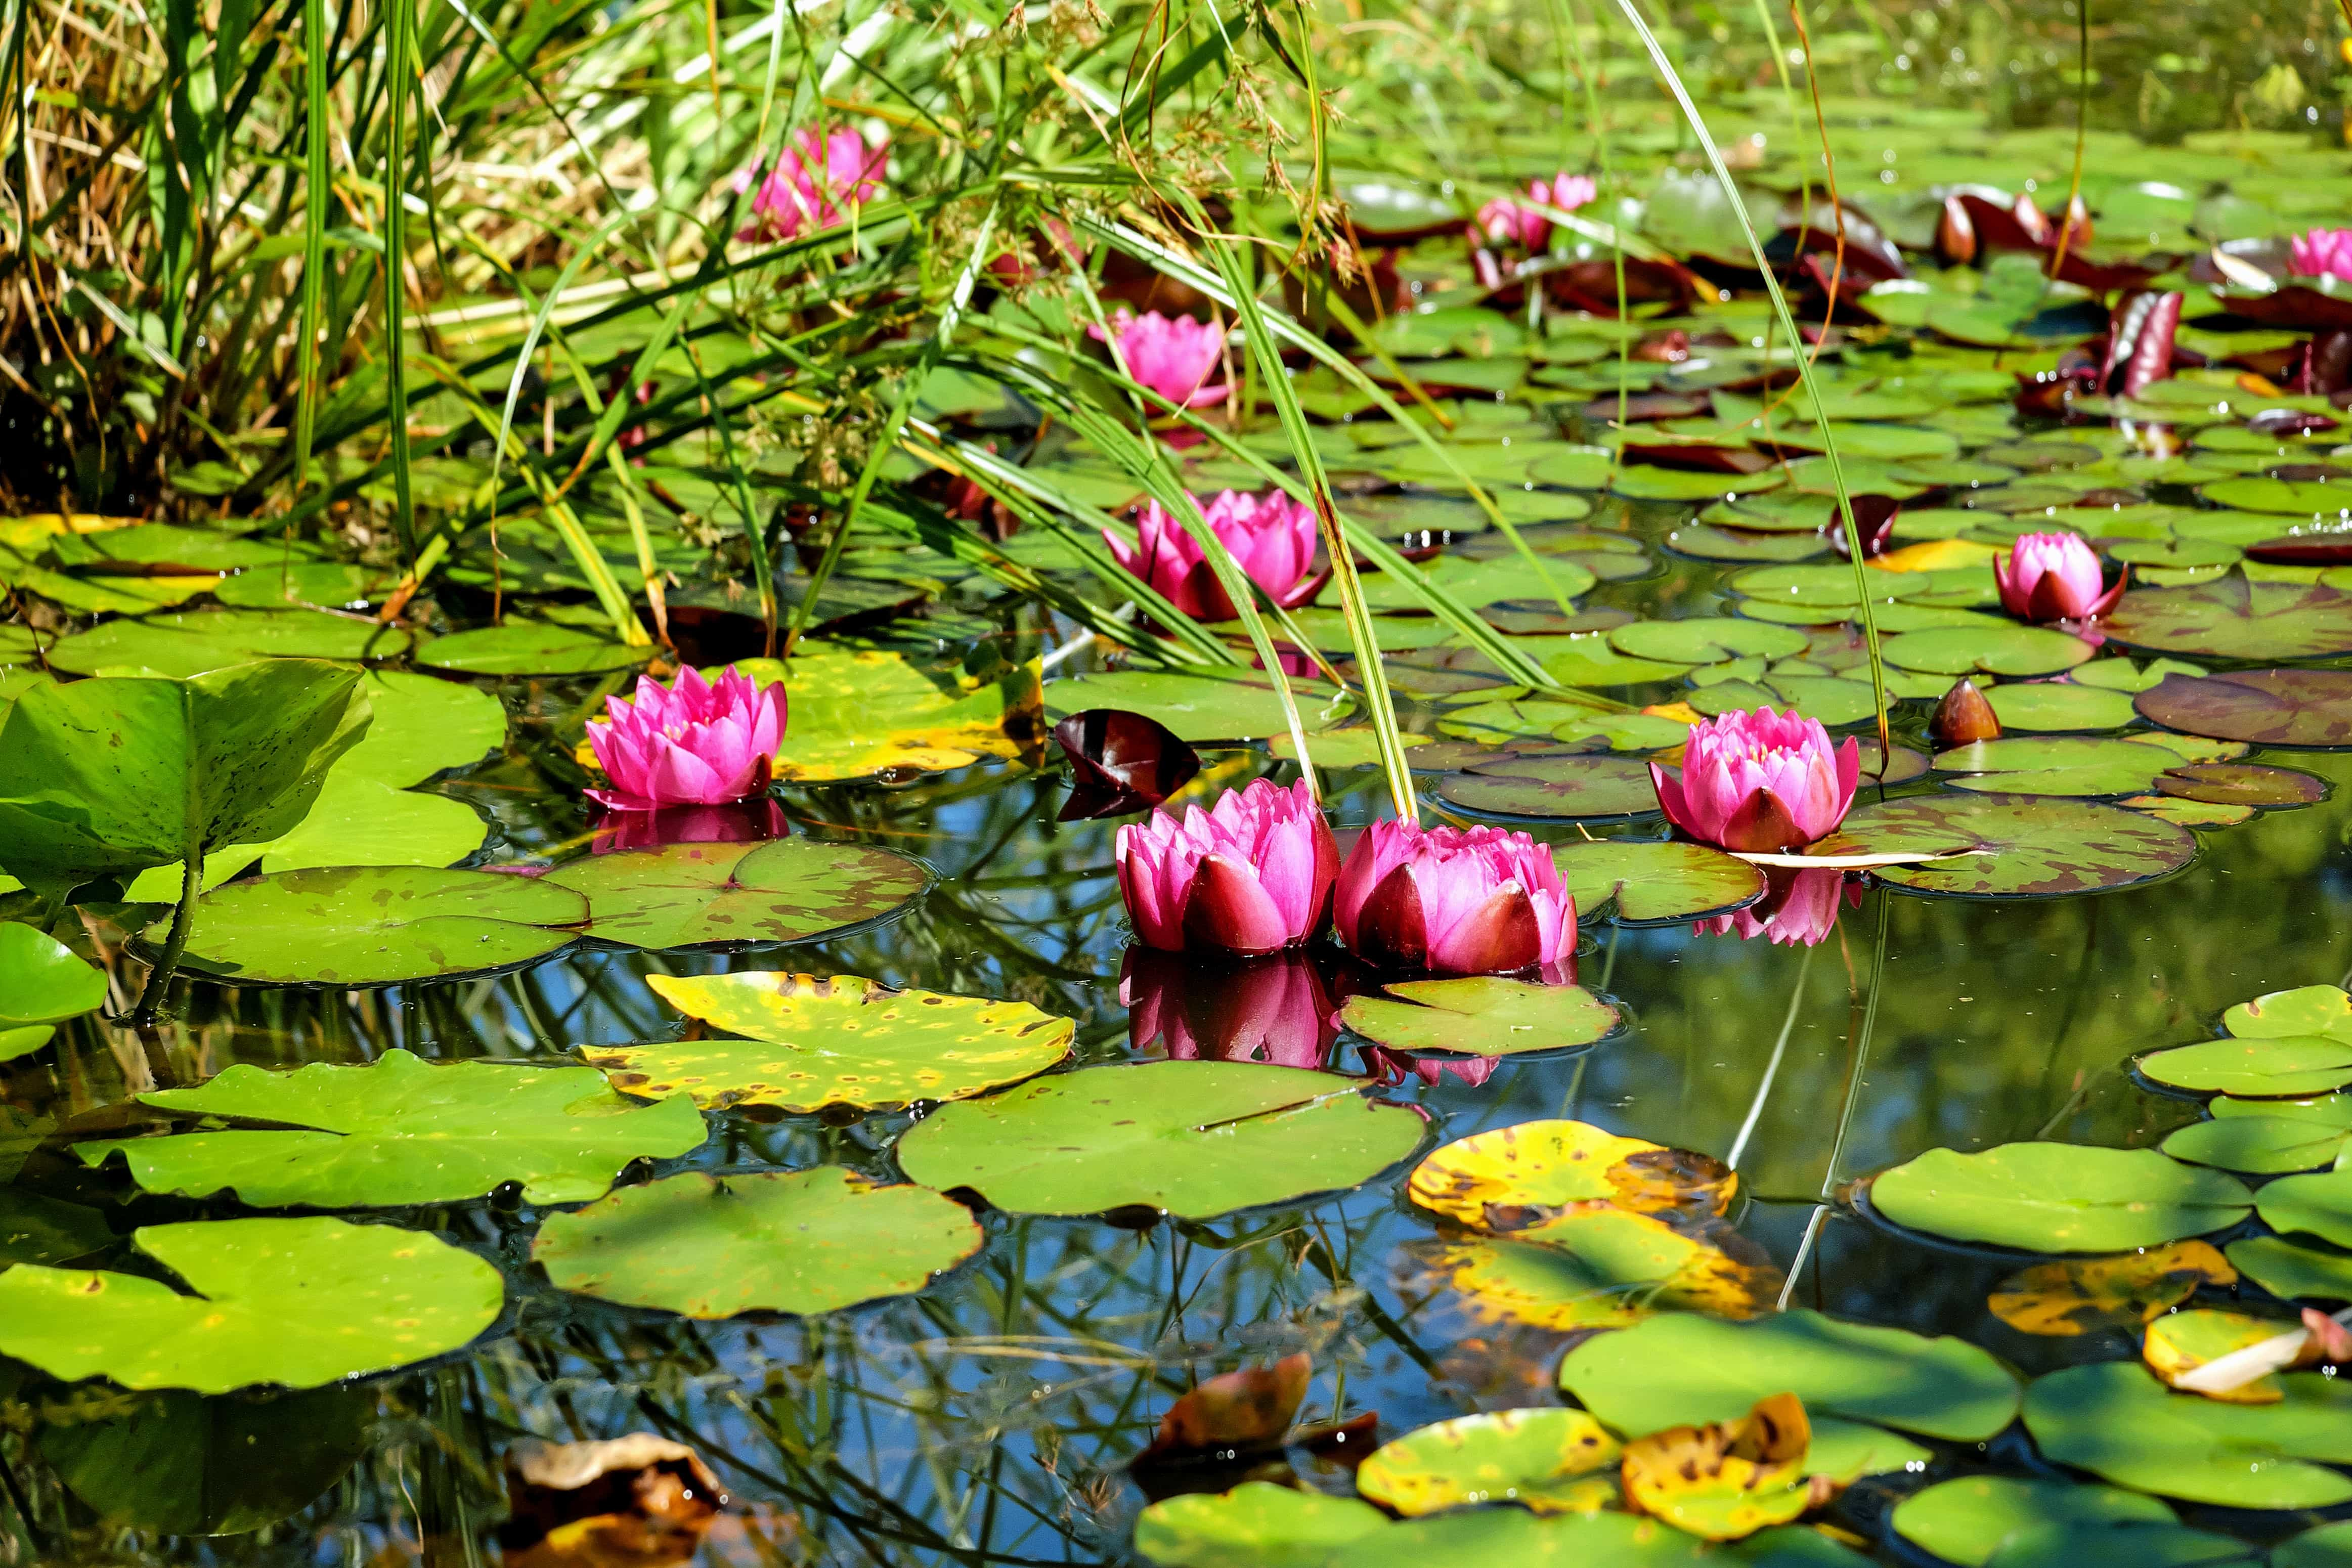 Free picture aquatic tree plant flower nature grass pond water aquatic tree plant flower nature grass pond water izmirmasajfo